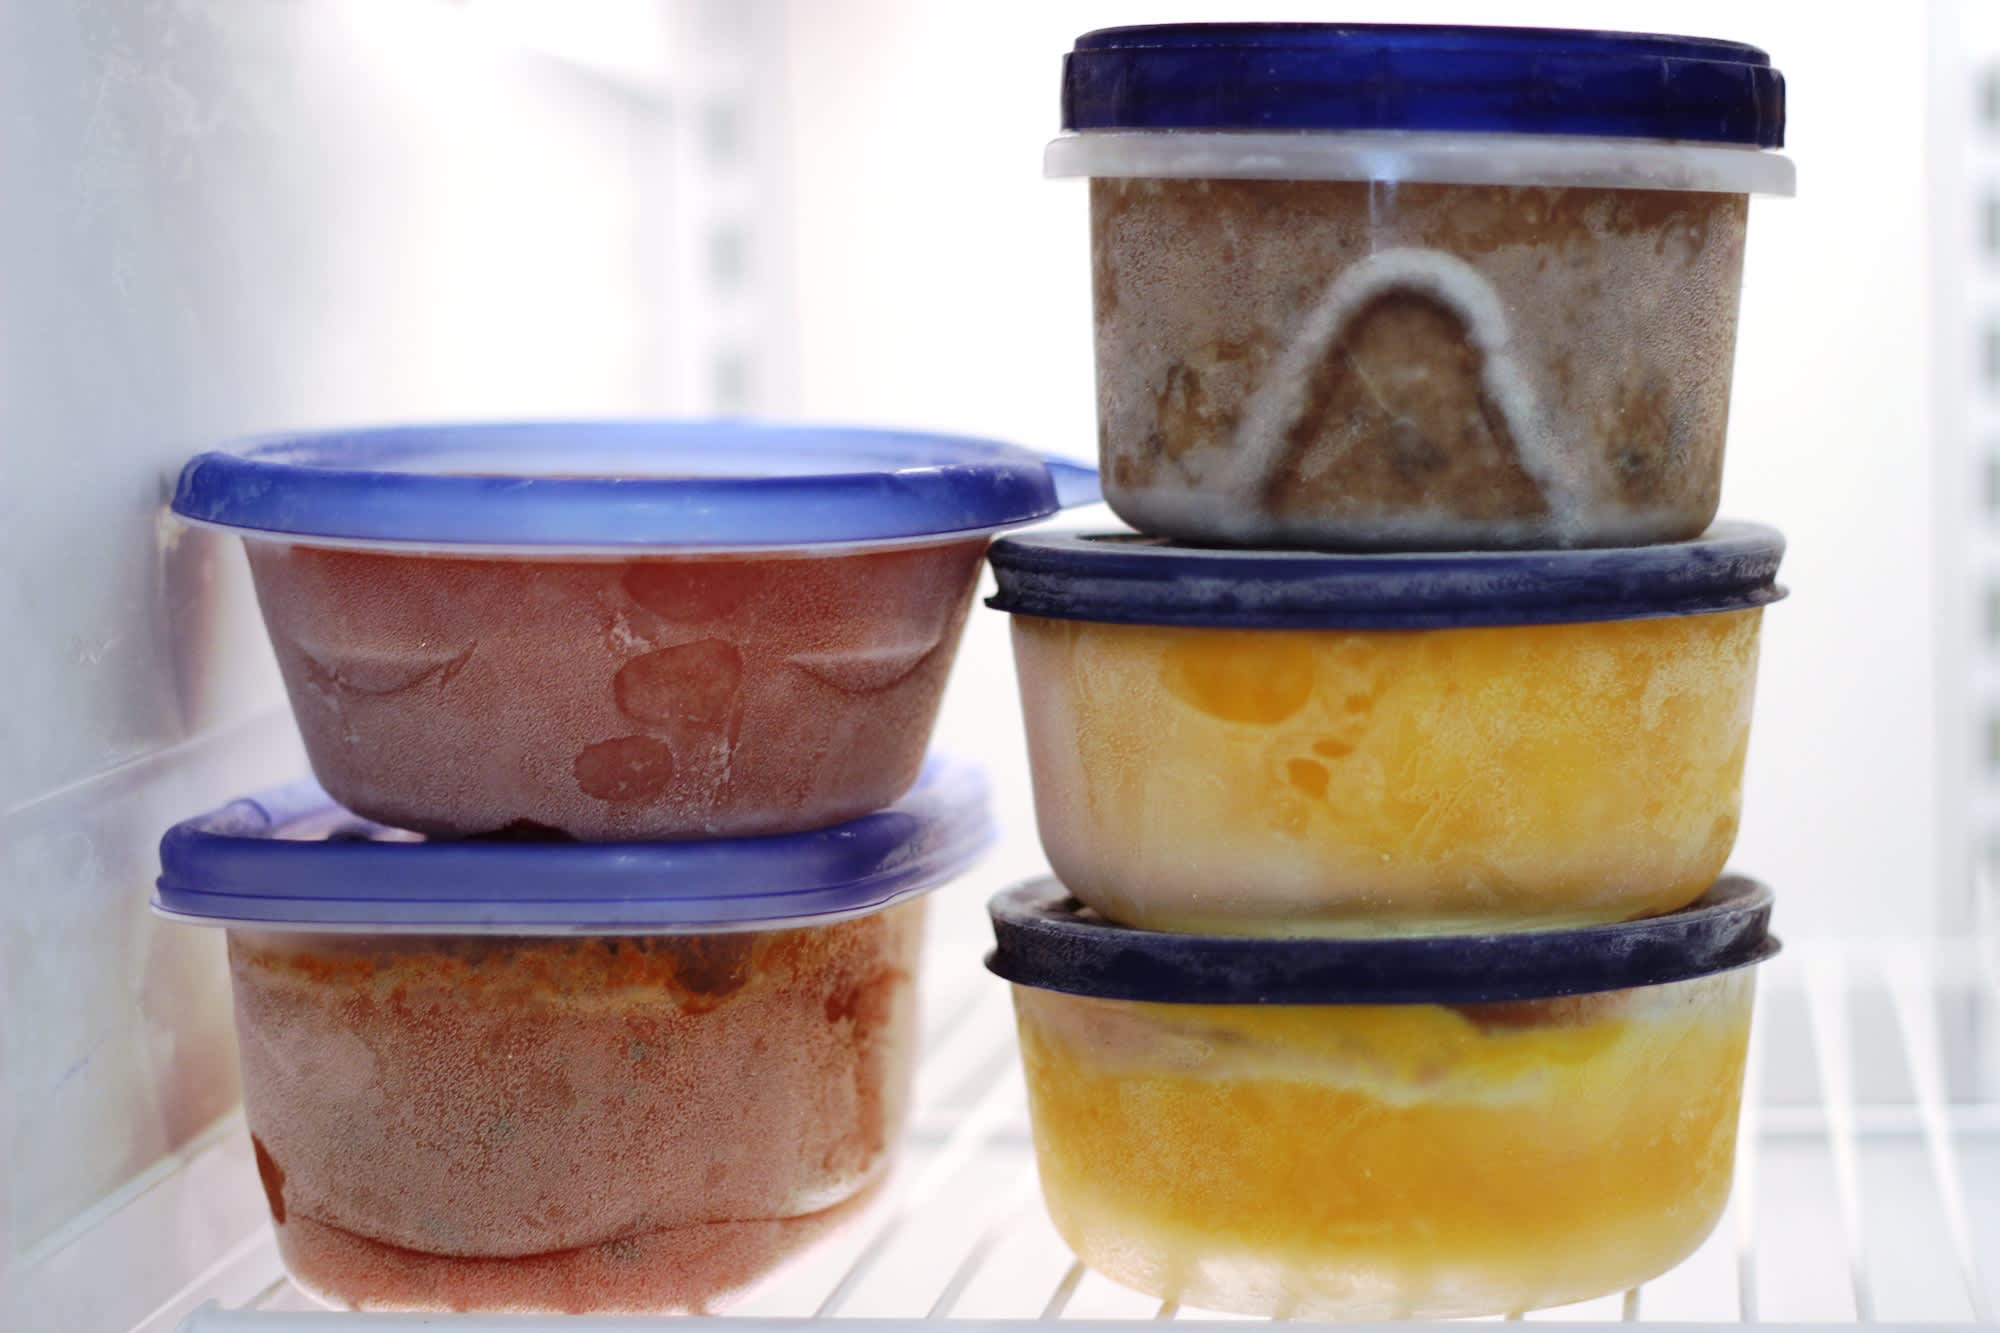 An Introduction to Freezer Cooking: How Freezer Cooking Can Save Money & Time